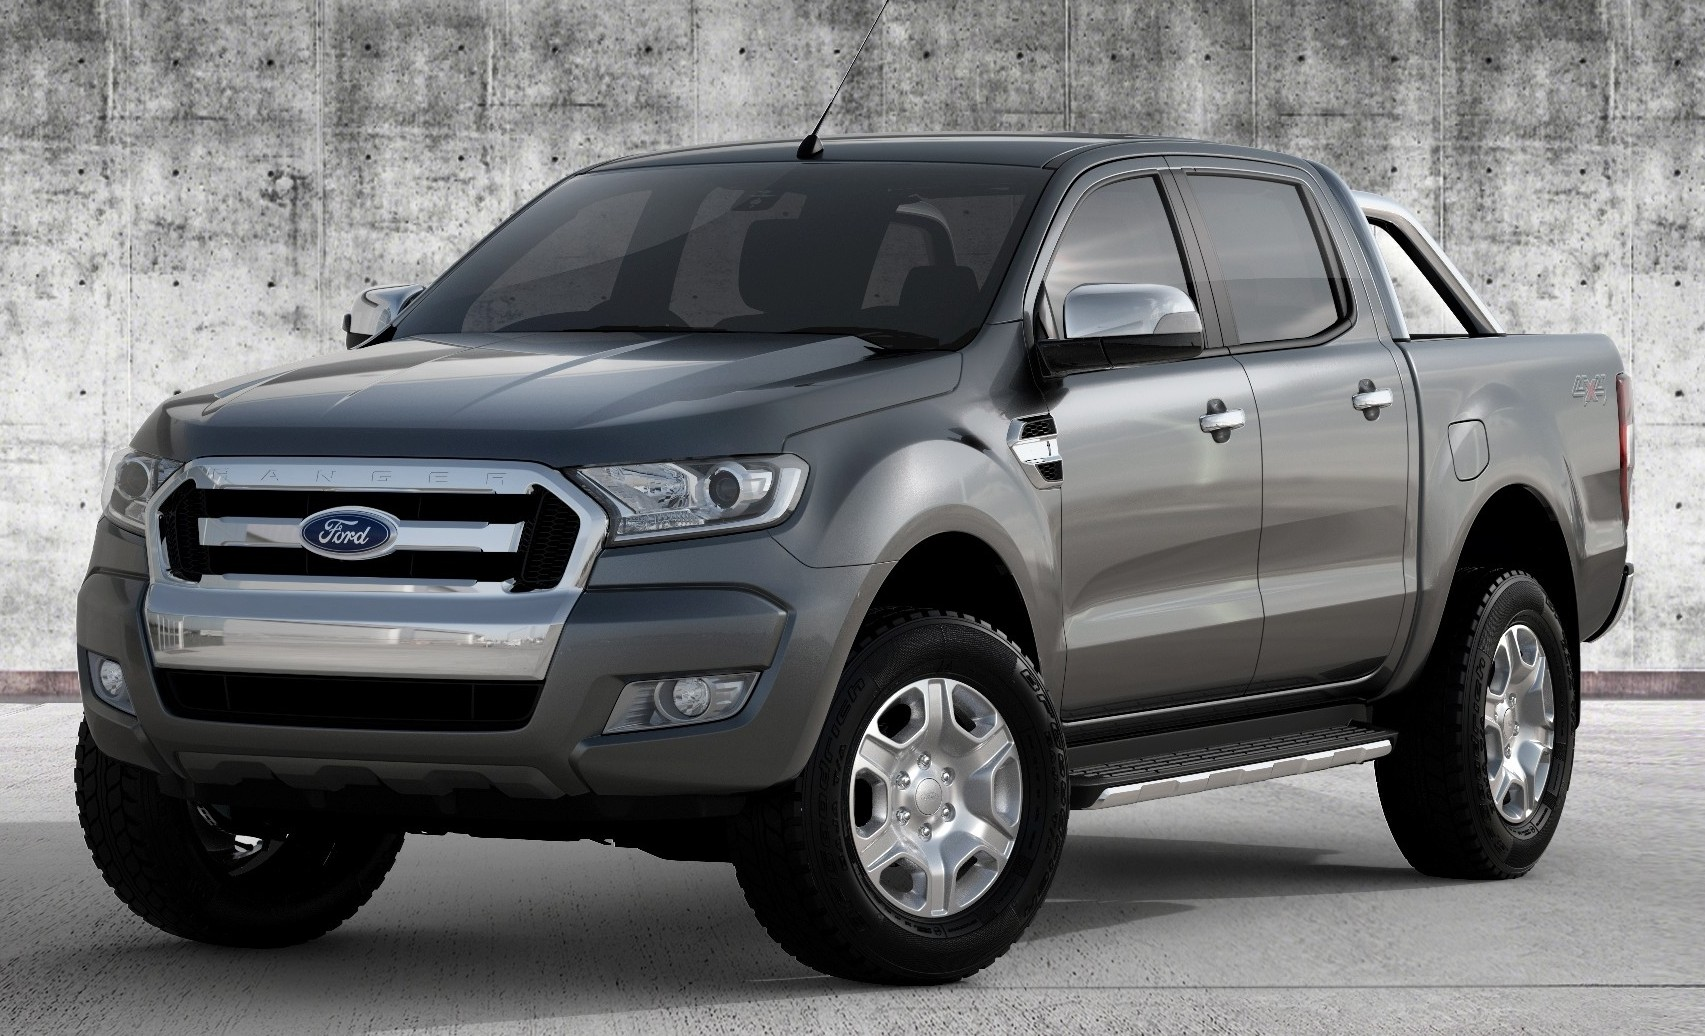 Local Market Tool >> Ford Ranger T6 facelift teased, showing all-new face